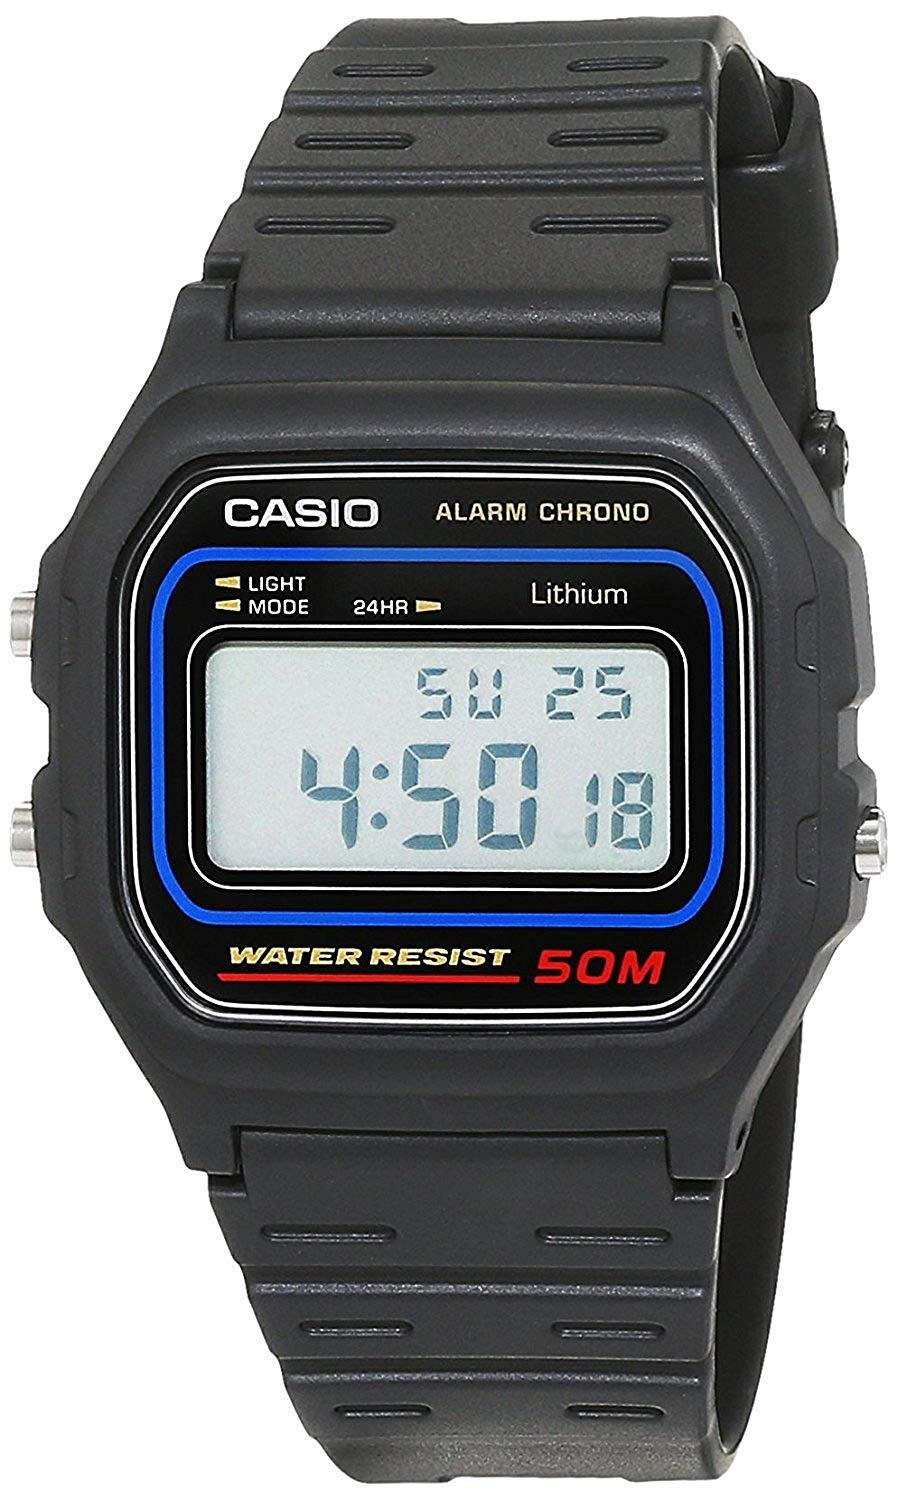 Casio Men's Watch in Resin/Acrylic Glass with Digital Display Microlight and Daily Alarm – Water Resistant